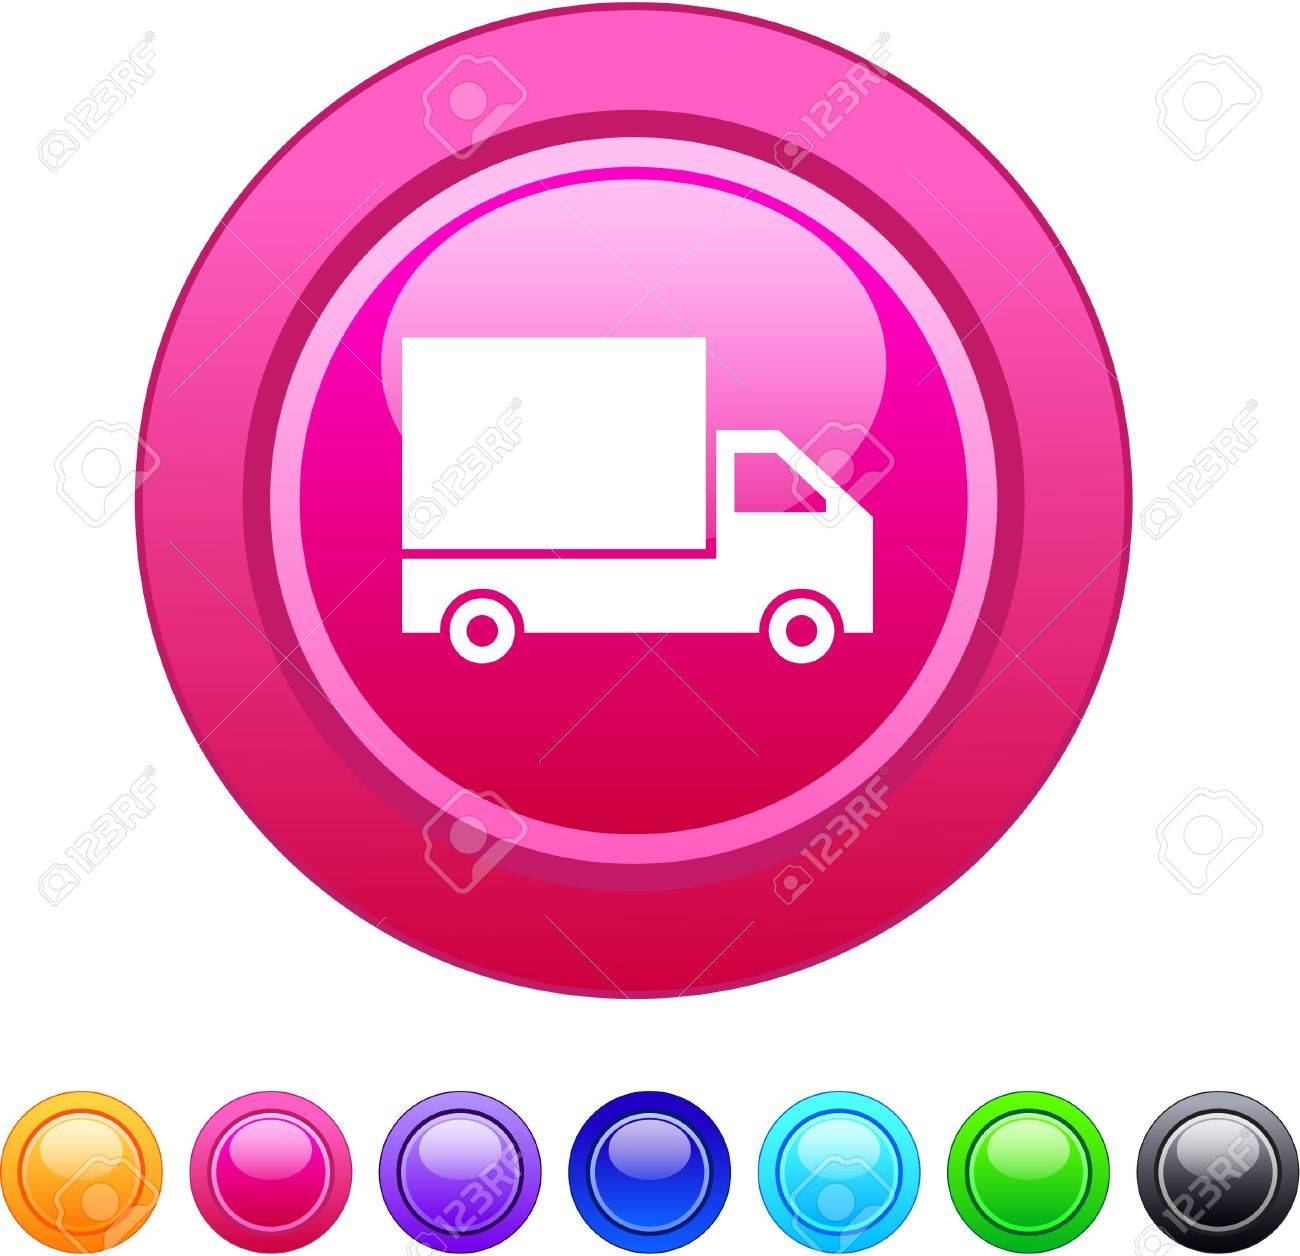 Delivery glossy circle web buttons. Stock Vector - 7375345